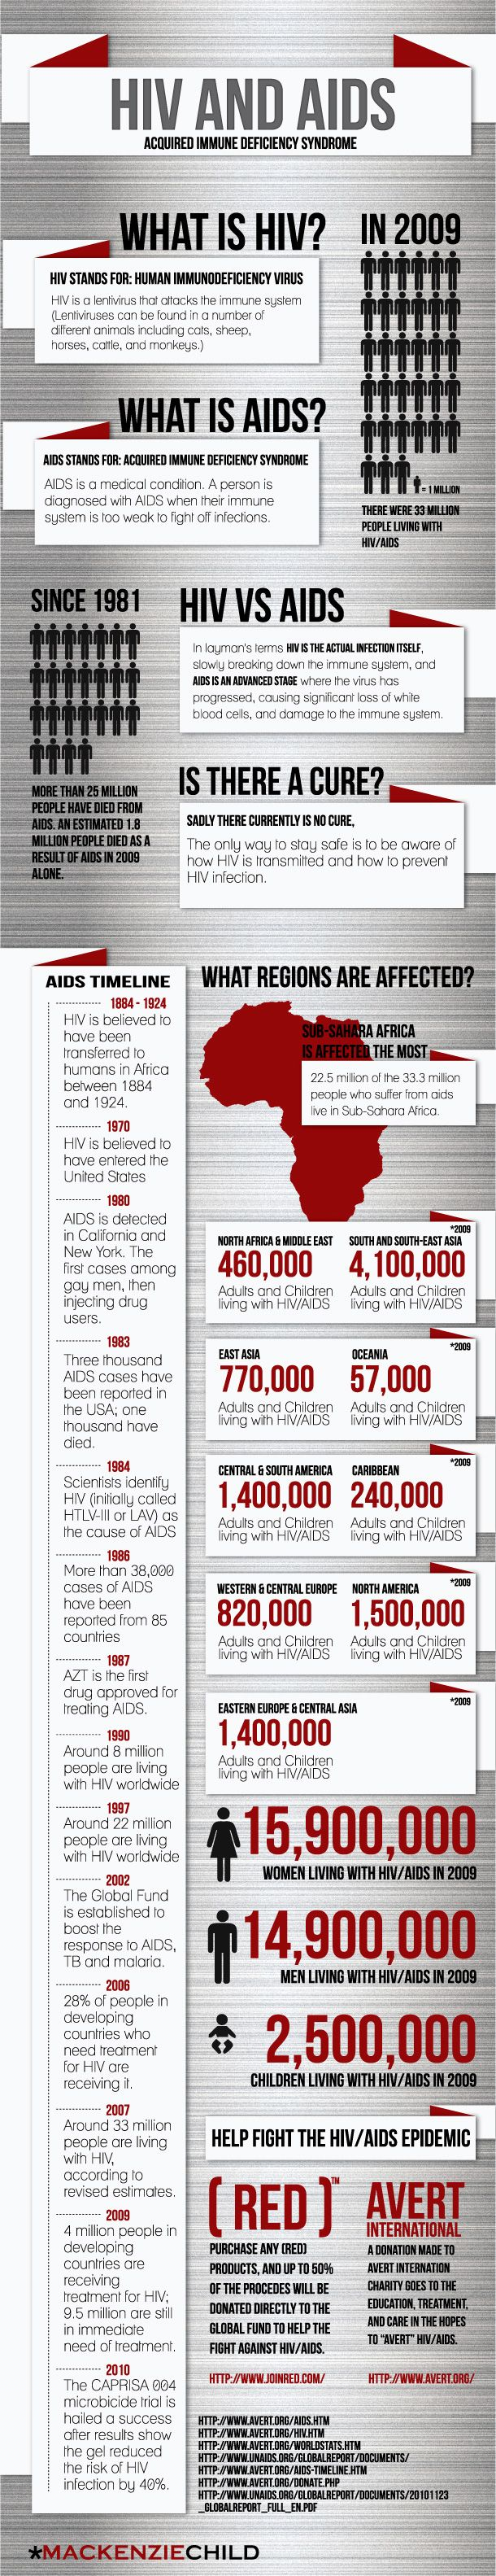 basic information and 2009 infographic! [RED] is not the only group that helps people live that live with HIV and prevent the spread of HIV but it is a good one